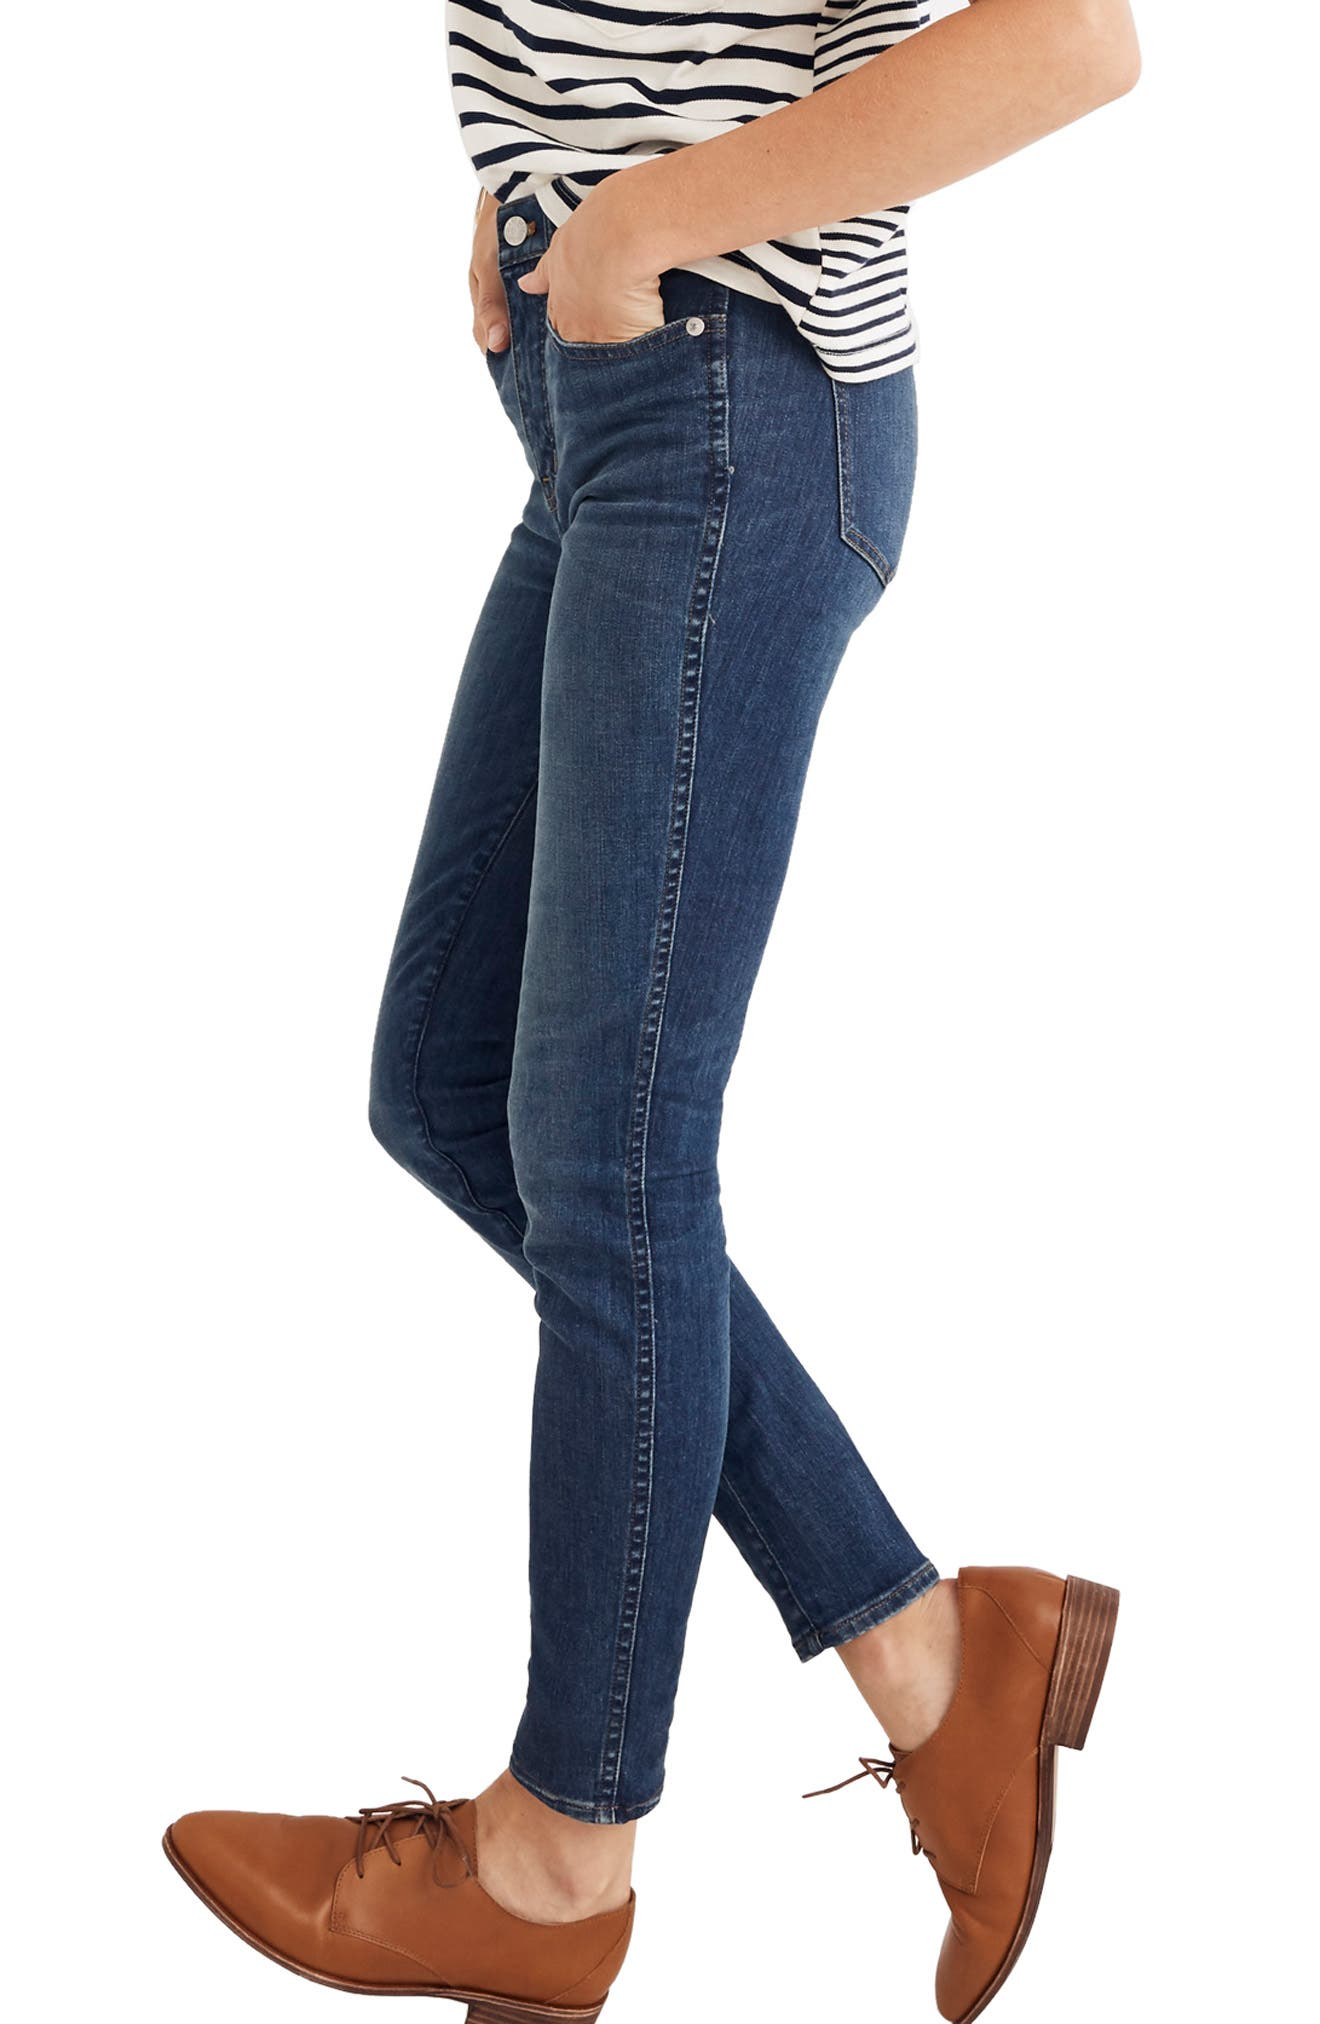 Eco Collection High Rise Skinny Jeans,                             Alternate thumbnail 4, color,                             ELINOR